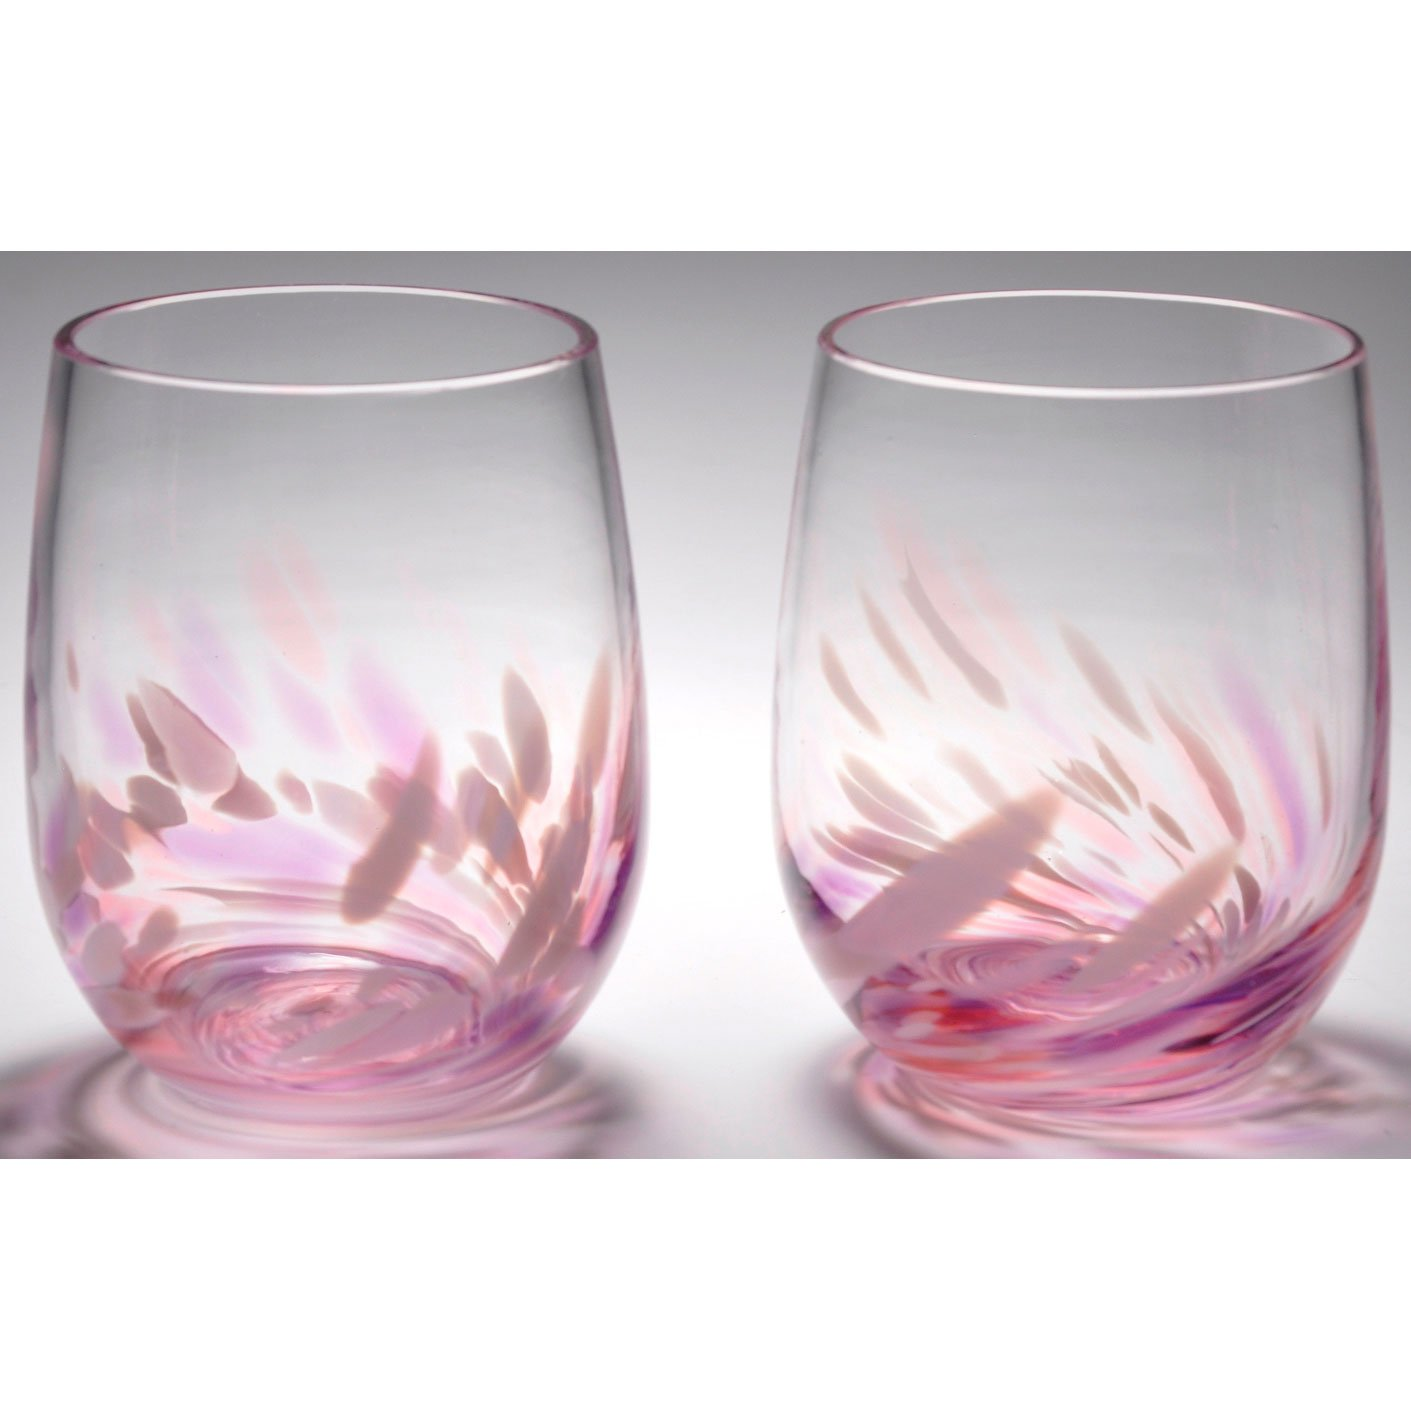 18ee132f5a9 The Furnace Glassworks Vino Breve Glasses Shown In Rose Violet Four Piece  Set Functional Artisan Handblown ...